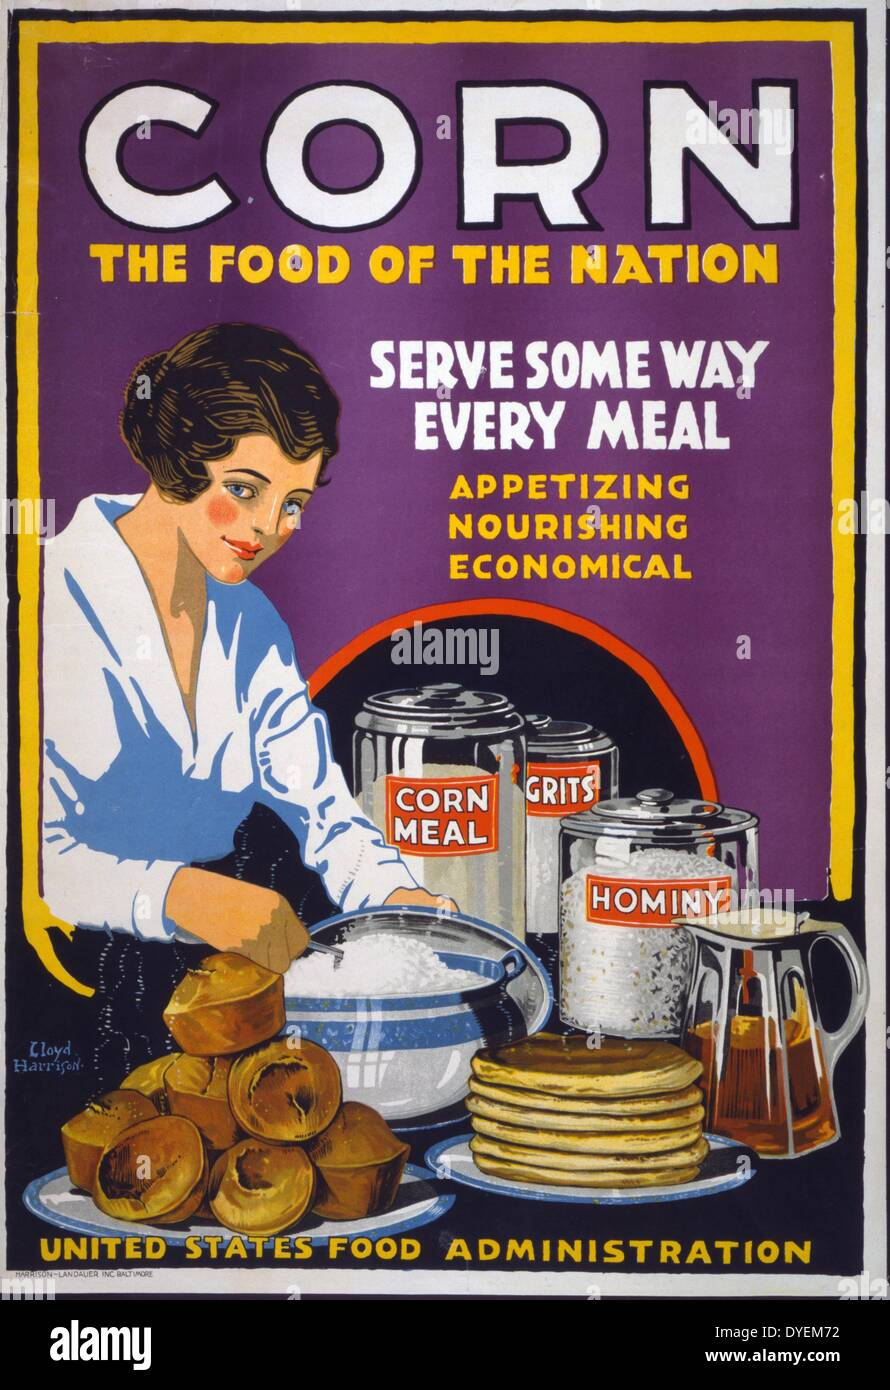 World War I American propaganda poster showing a woman serving muffins, pancakes, and grits, with canisters on the table - Stock Image